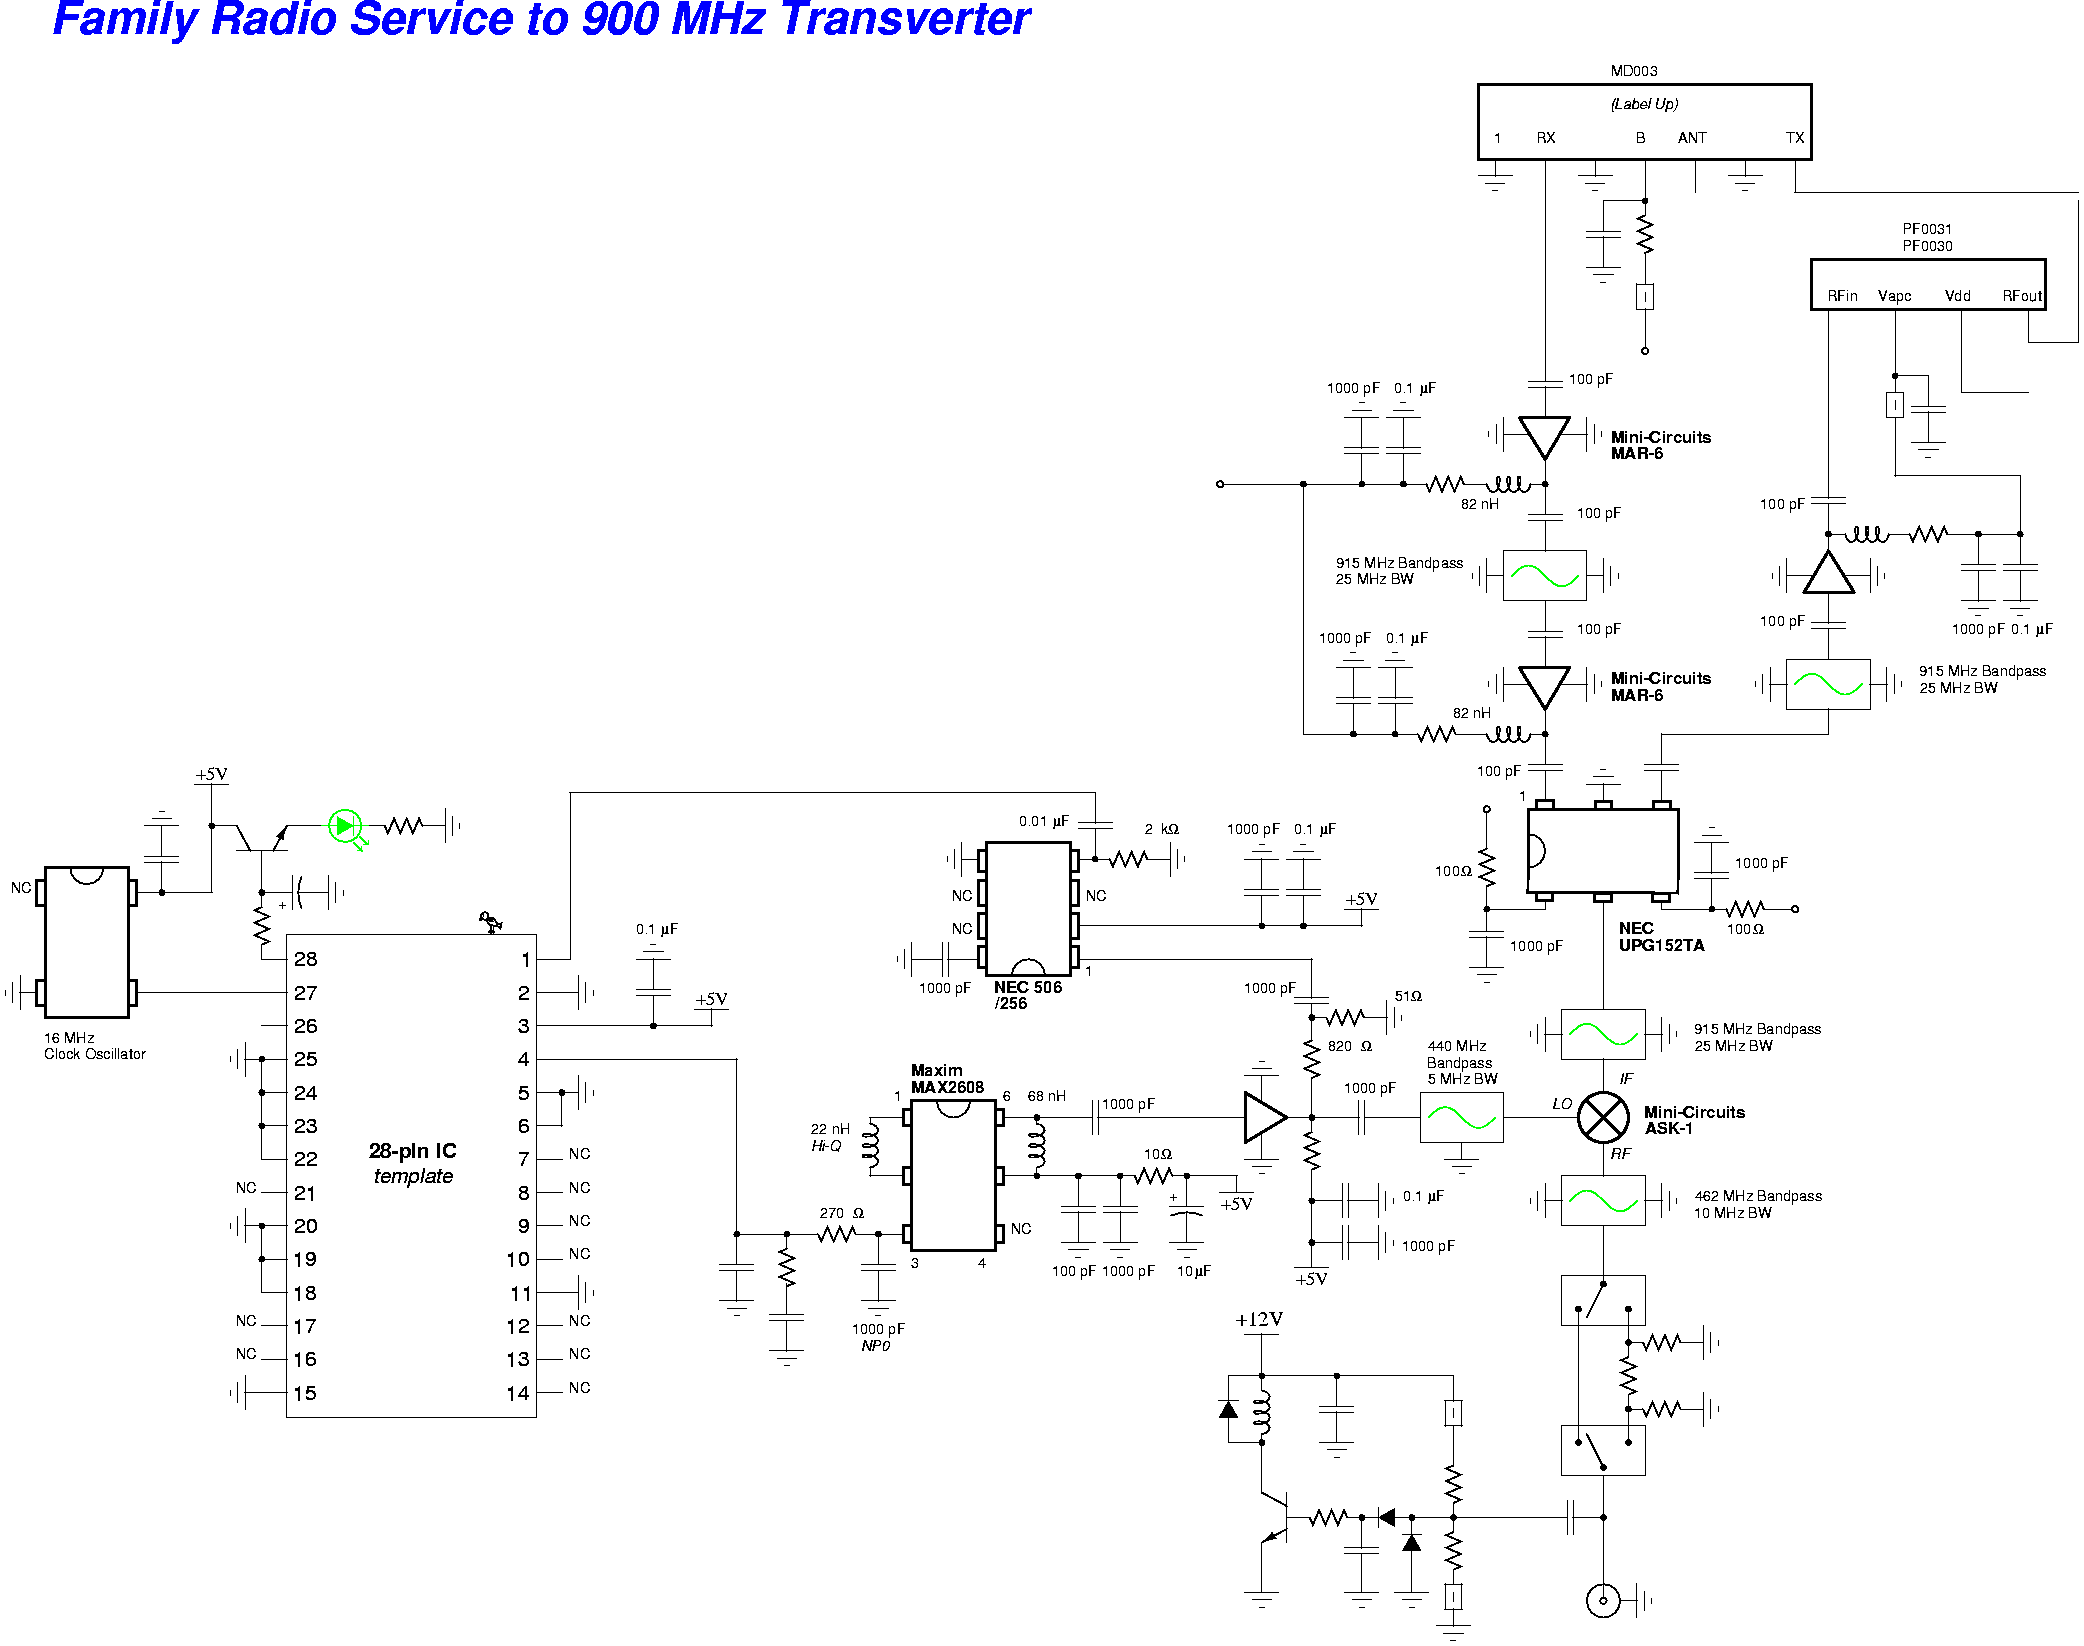 Transceiver Electronic Circuits 3w Fm Transmitter Circuit Diagram Family Radio Service Frs To 900 Mhz Transverter Schematic